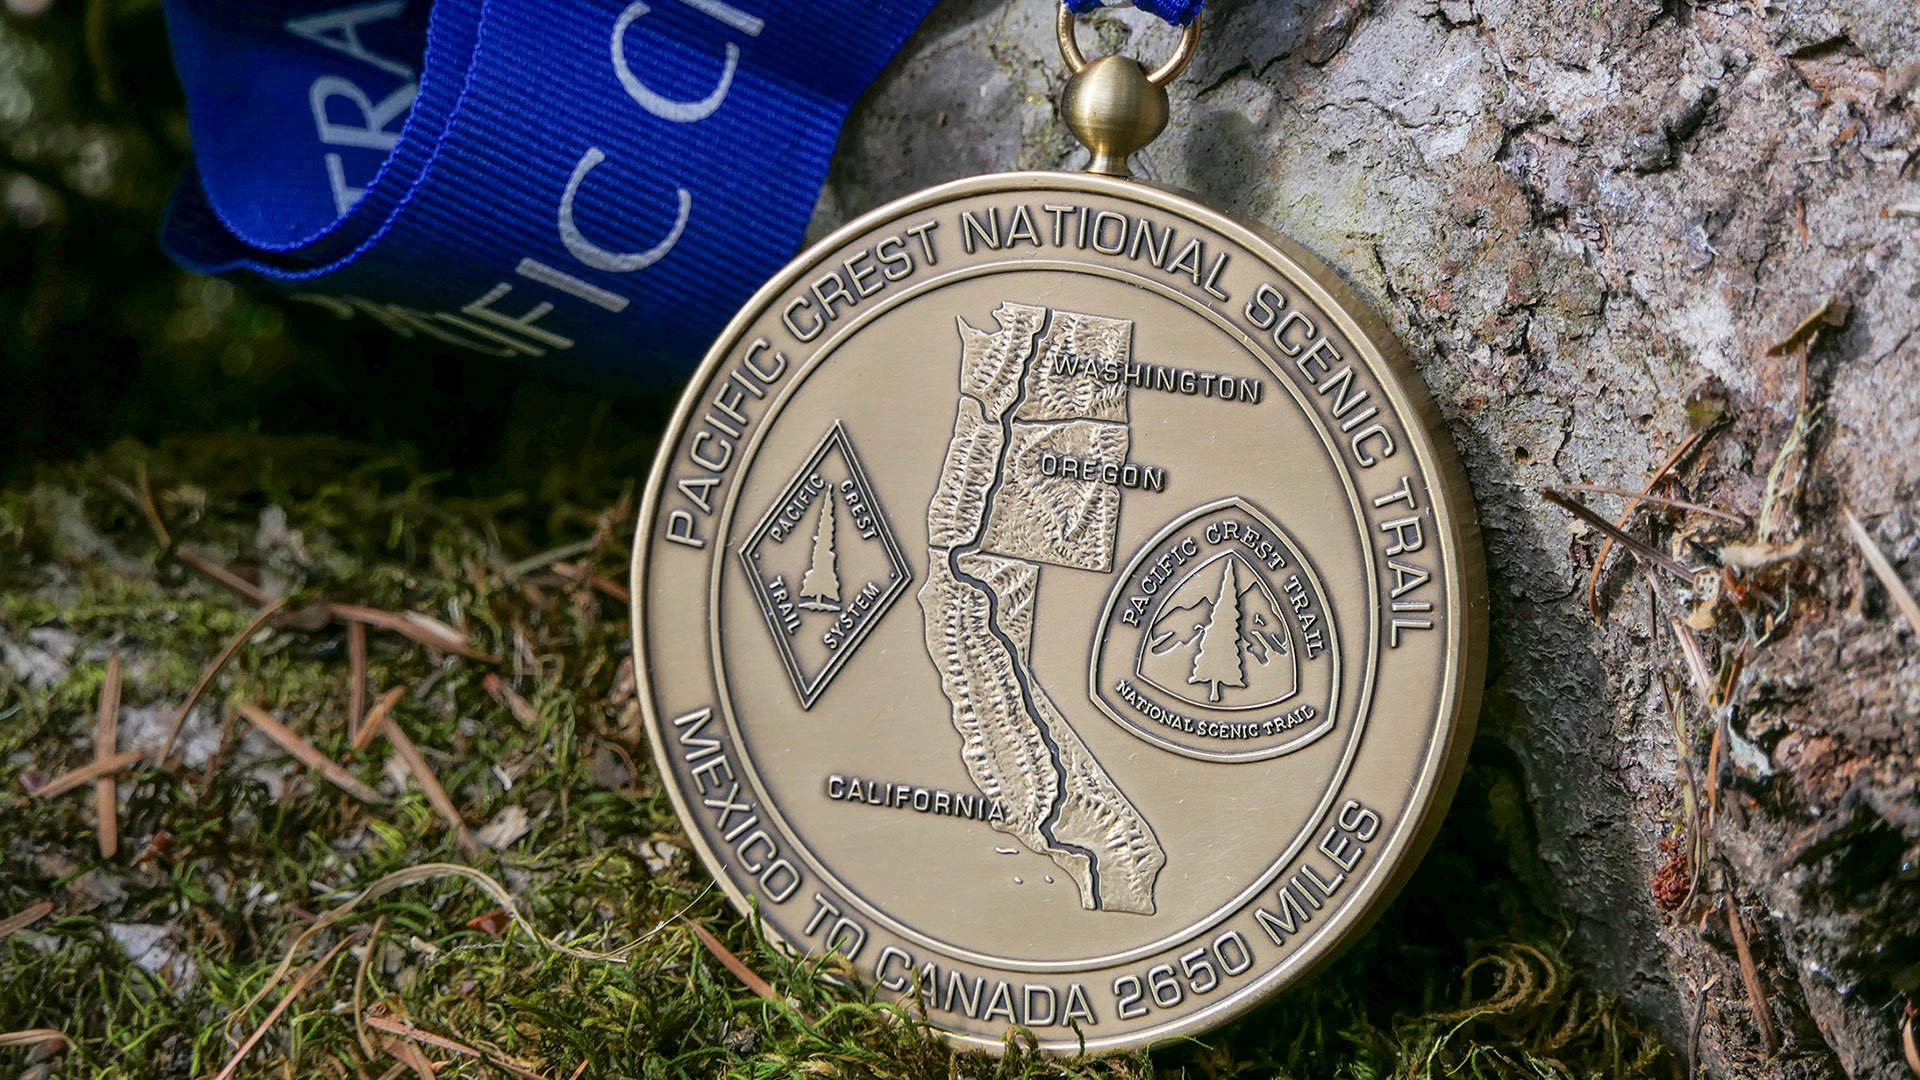 The PCT medal. Once you're a 2600 miler, you can get this beautiful PCT completion medal.